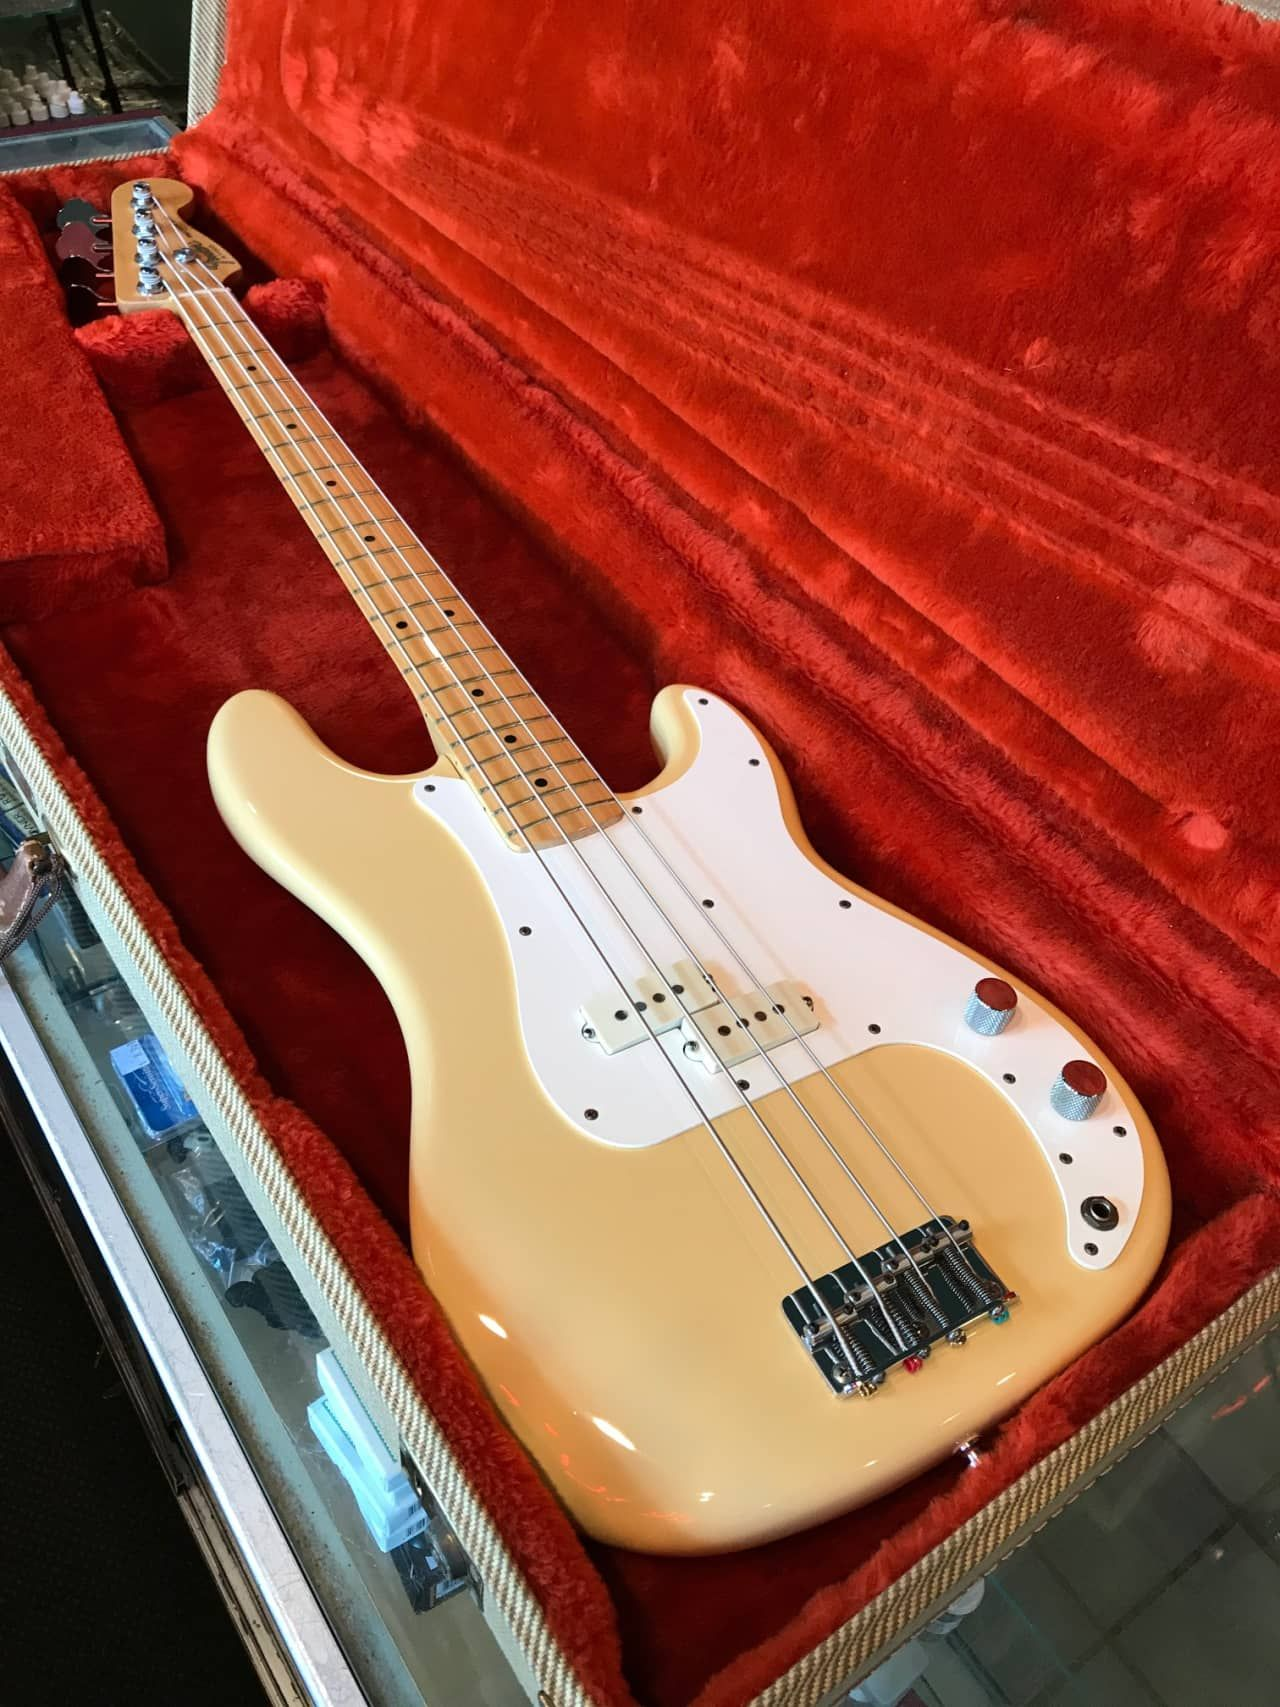 medium resolution of vintage 1983 usa fender p bass cream precision bass in excellent condition this cool instrument is american made alder body maple neck cream finish